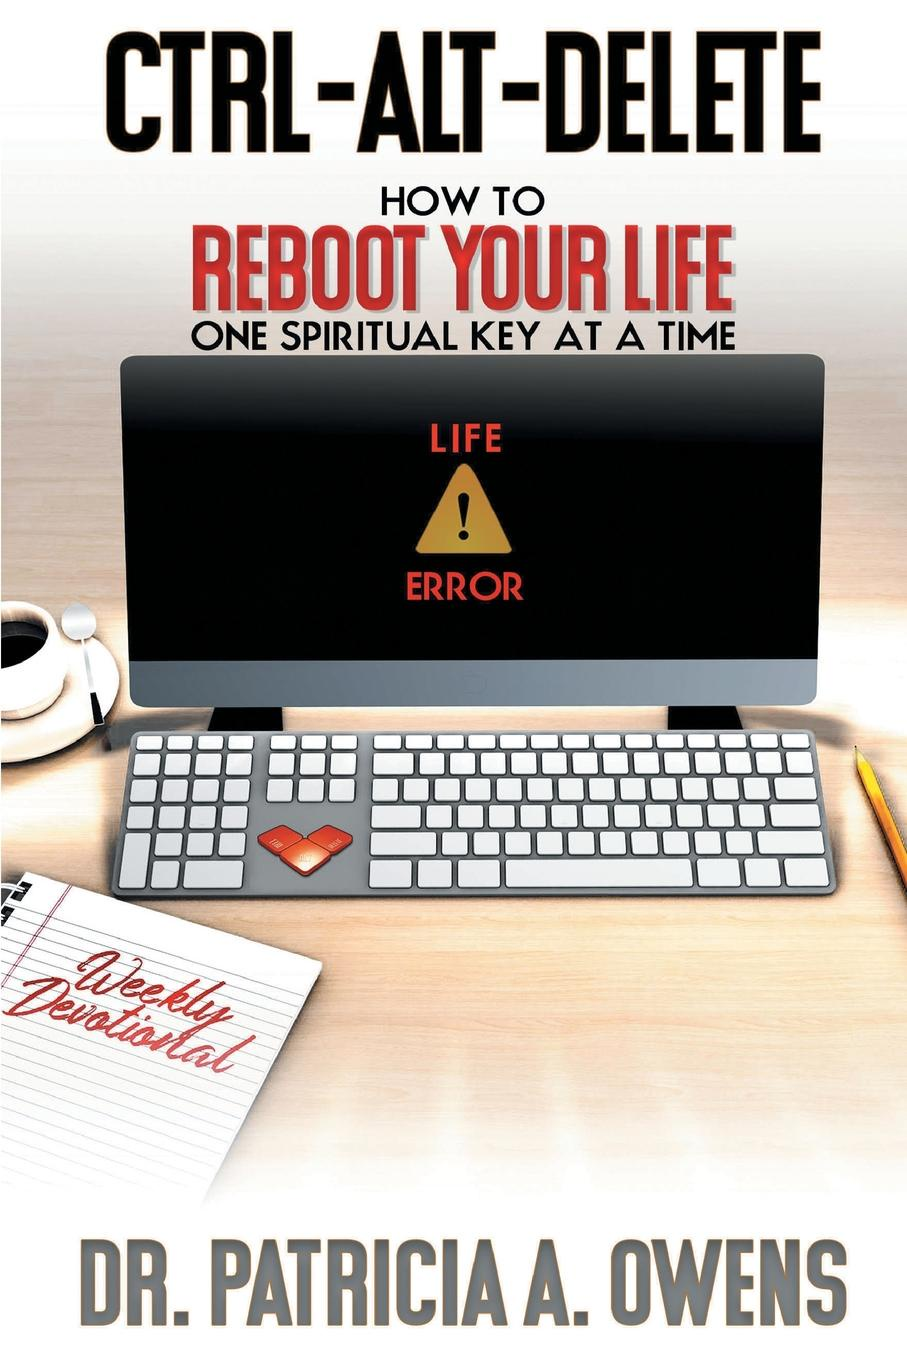 Dr. Patricia A. Owens Control-Alt-Delete. How to Reboot Your Life One Spiritual Key at a Time bethenia owens adair dr owens adair some of her life experiences